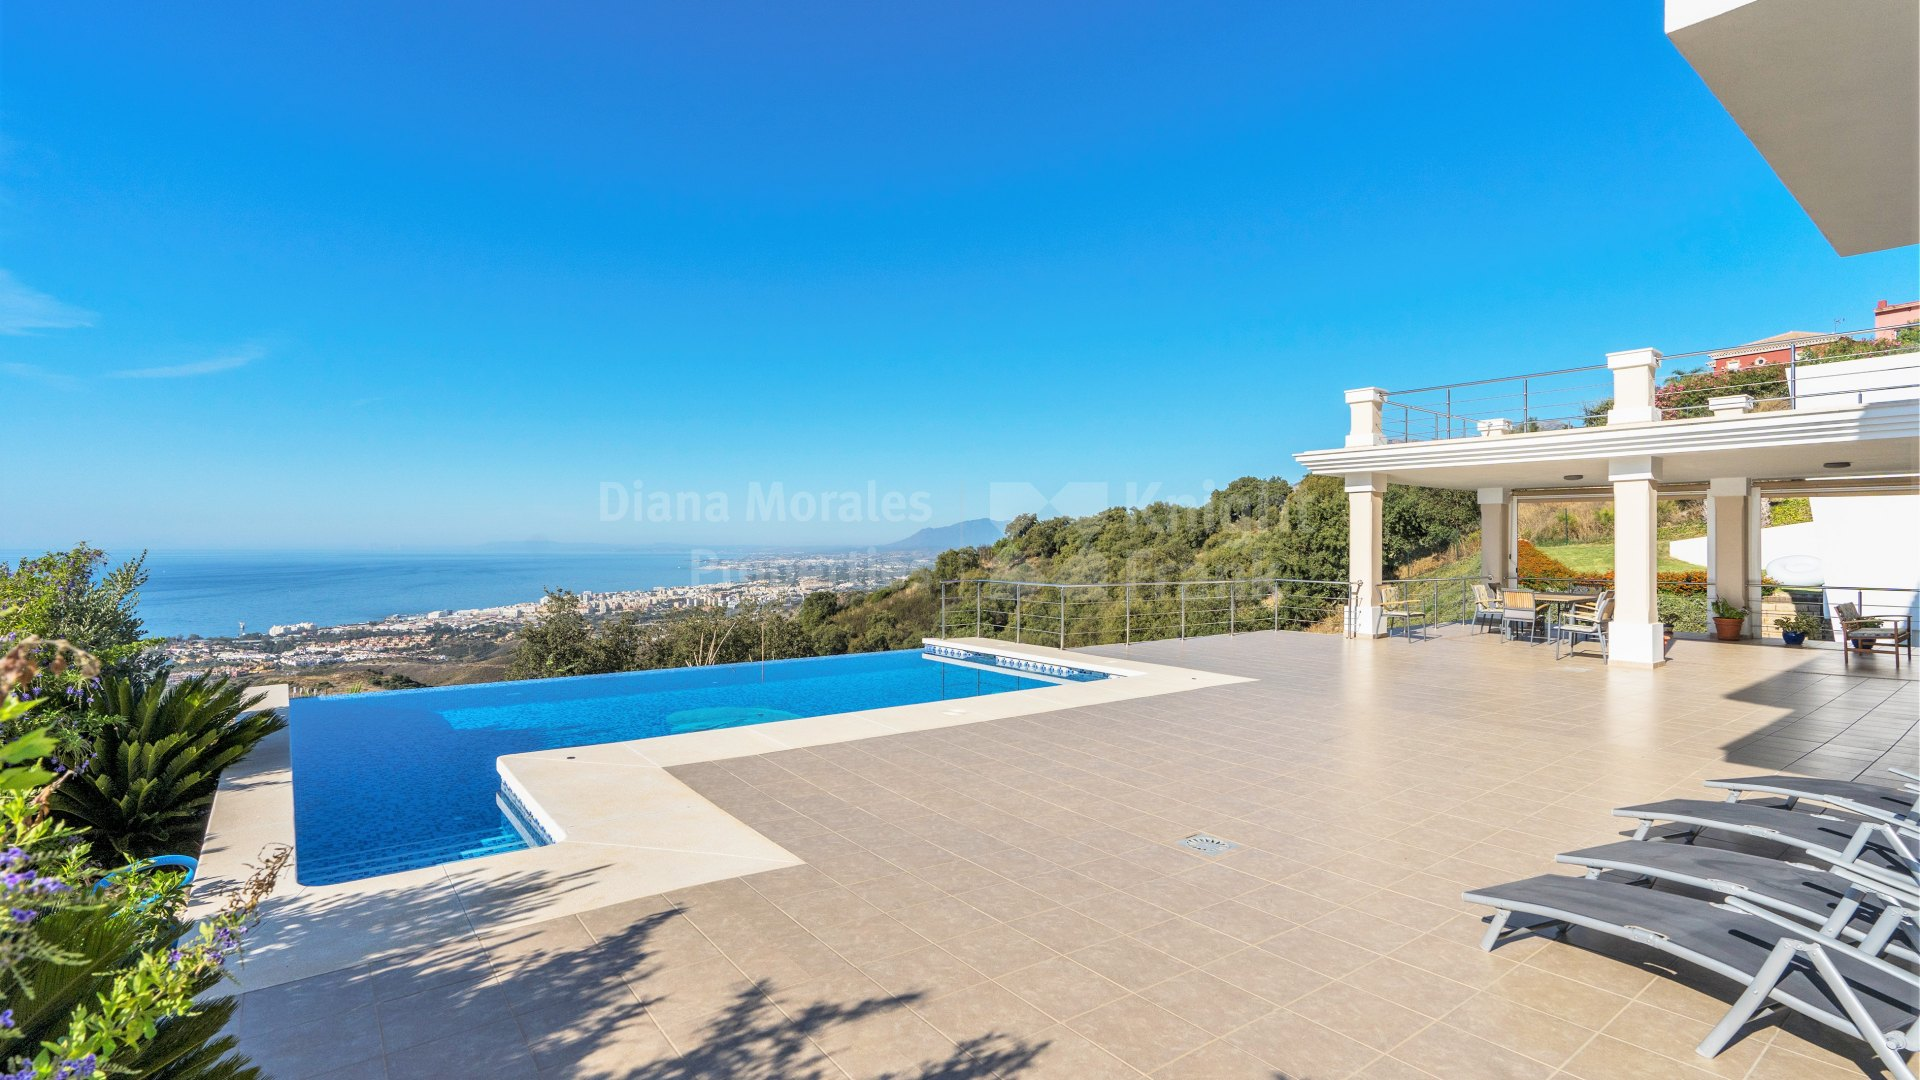 Los Altos de los Monteros, Villa with sea views in Altos de Los Monteros